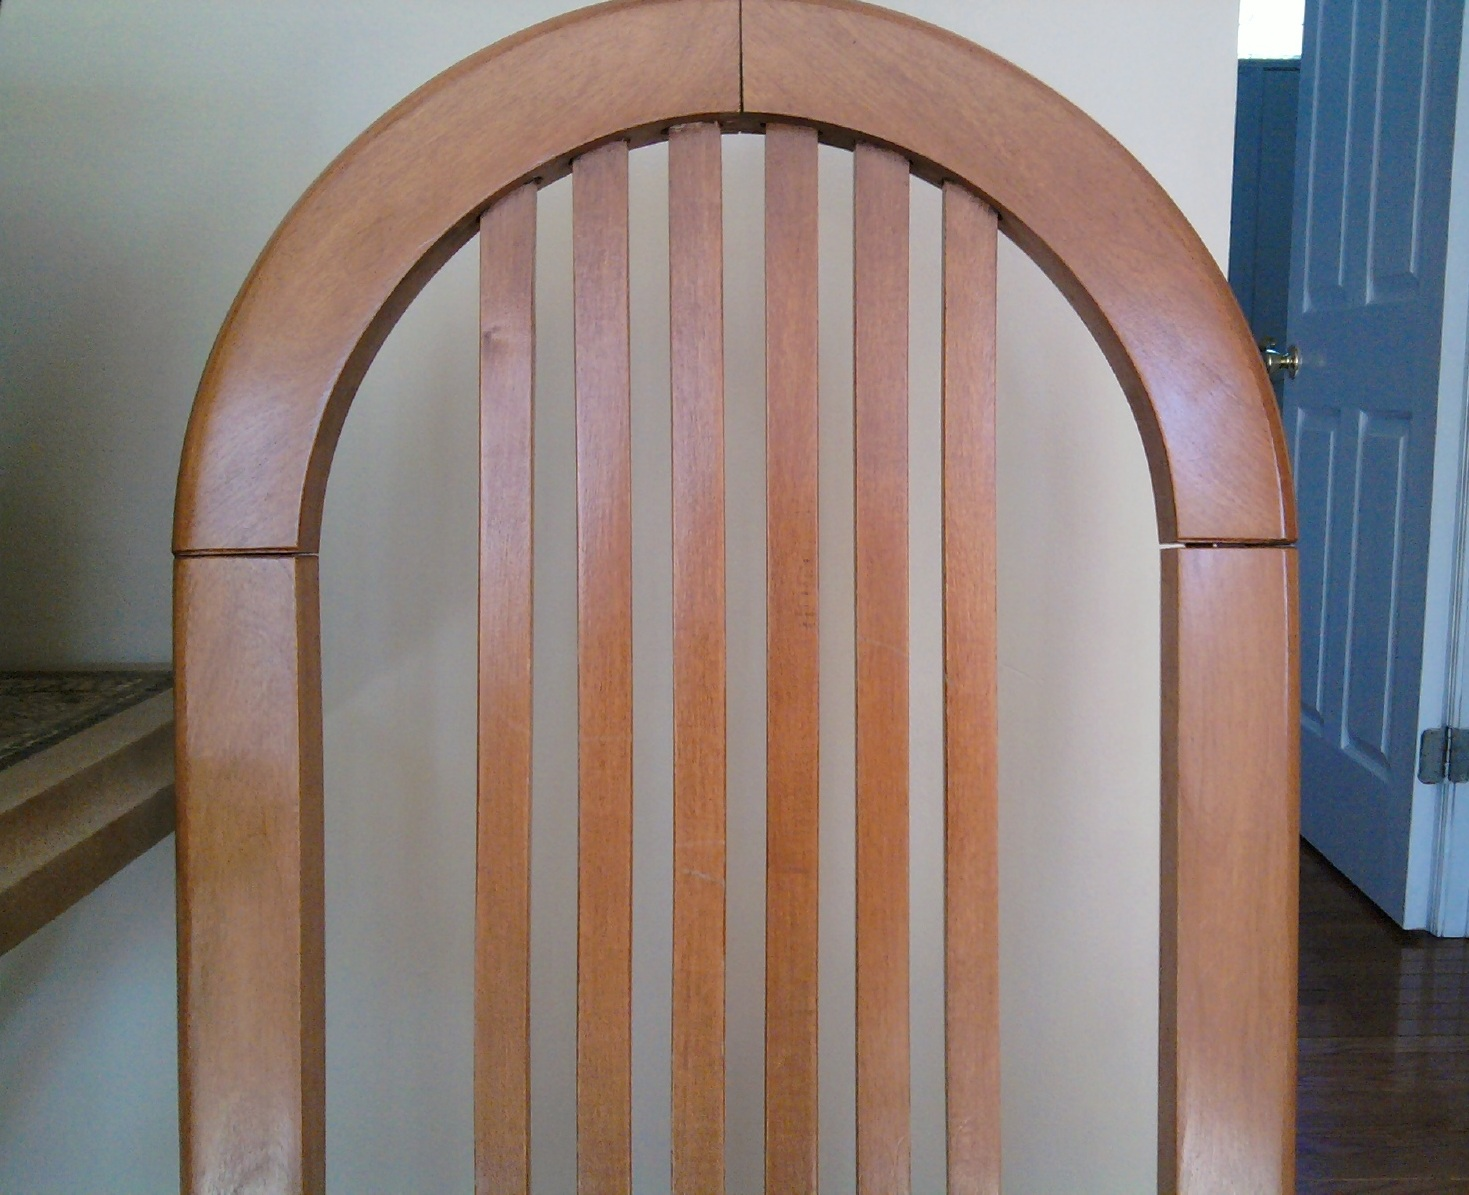 Scratch Repair for Wood Chairs & Rails: 10-Minute Fix